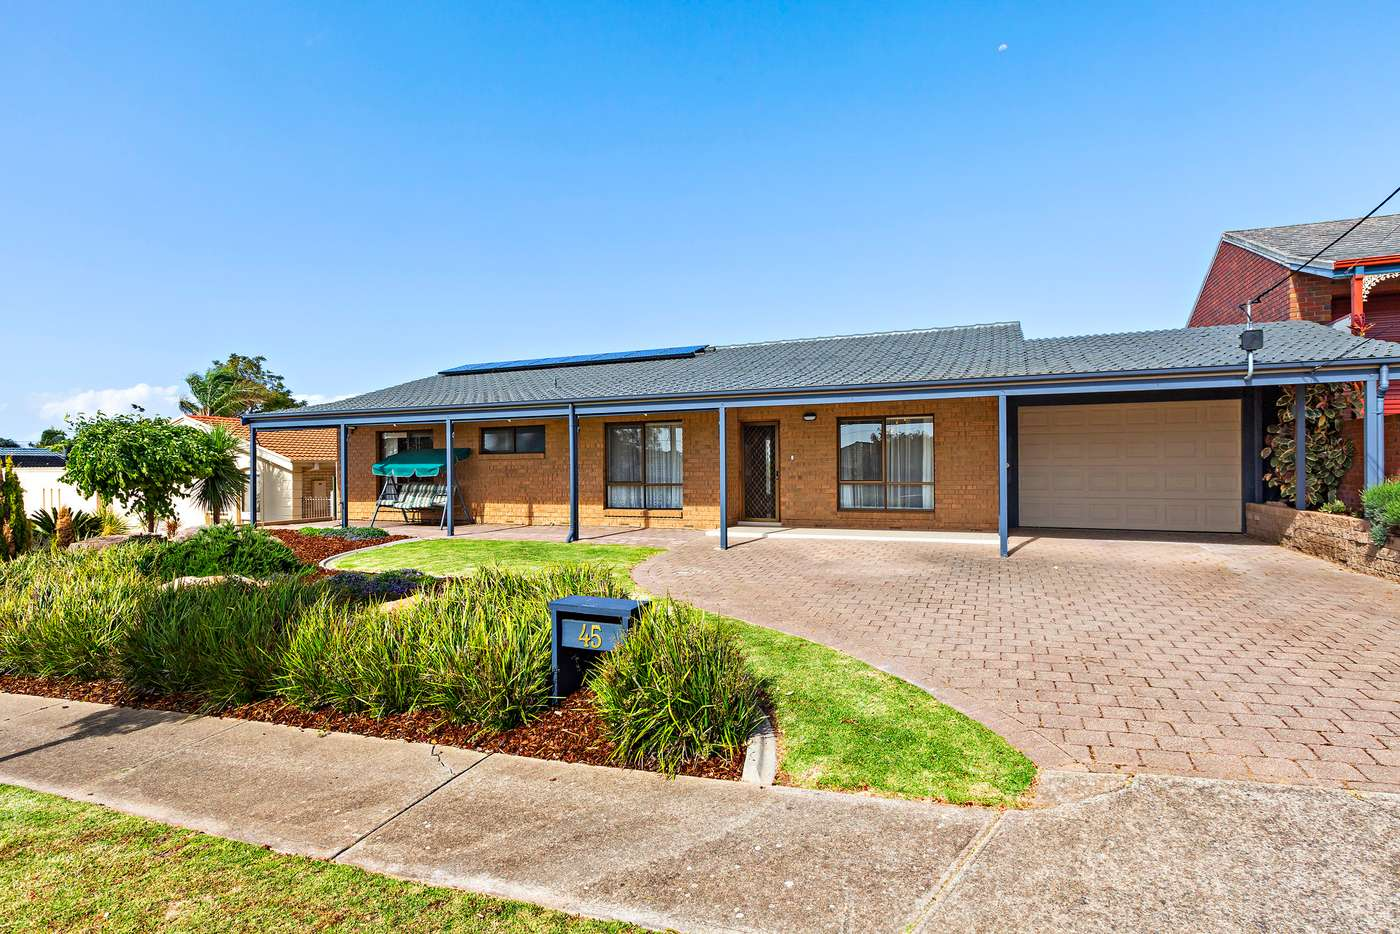 Main view of Homely house listing, 45 Davenport Terrace, Seaview Downs SA 5049